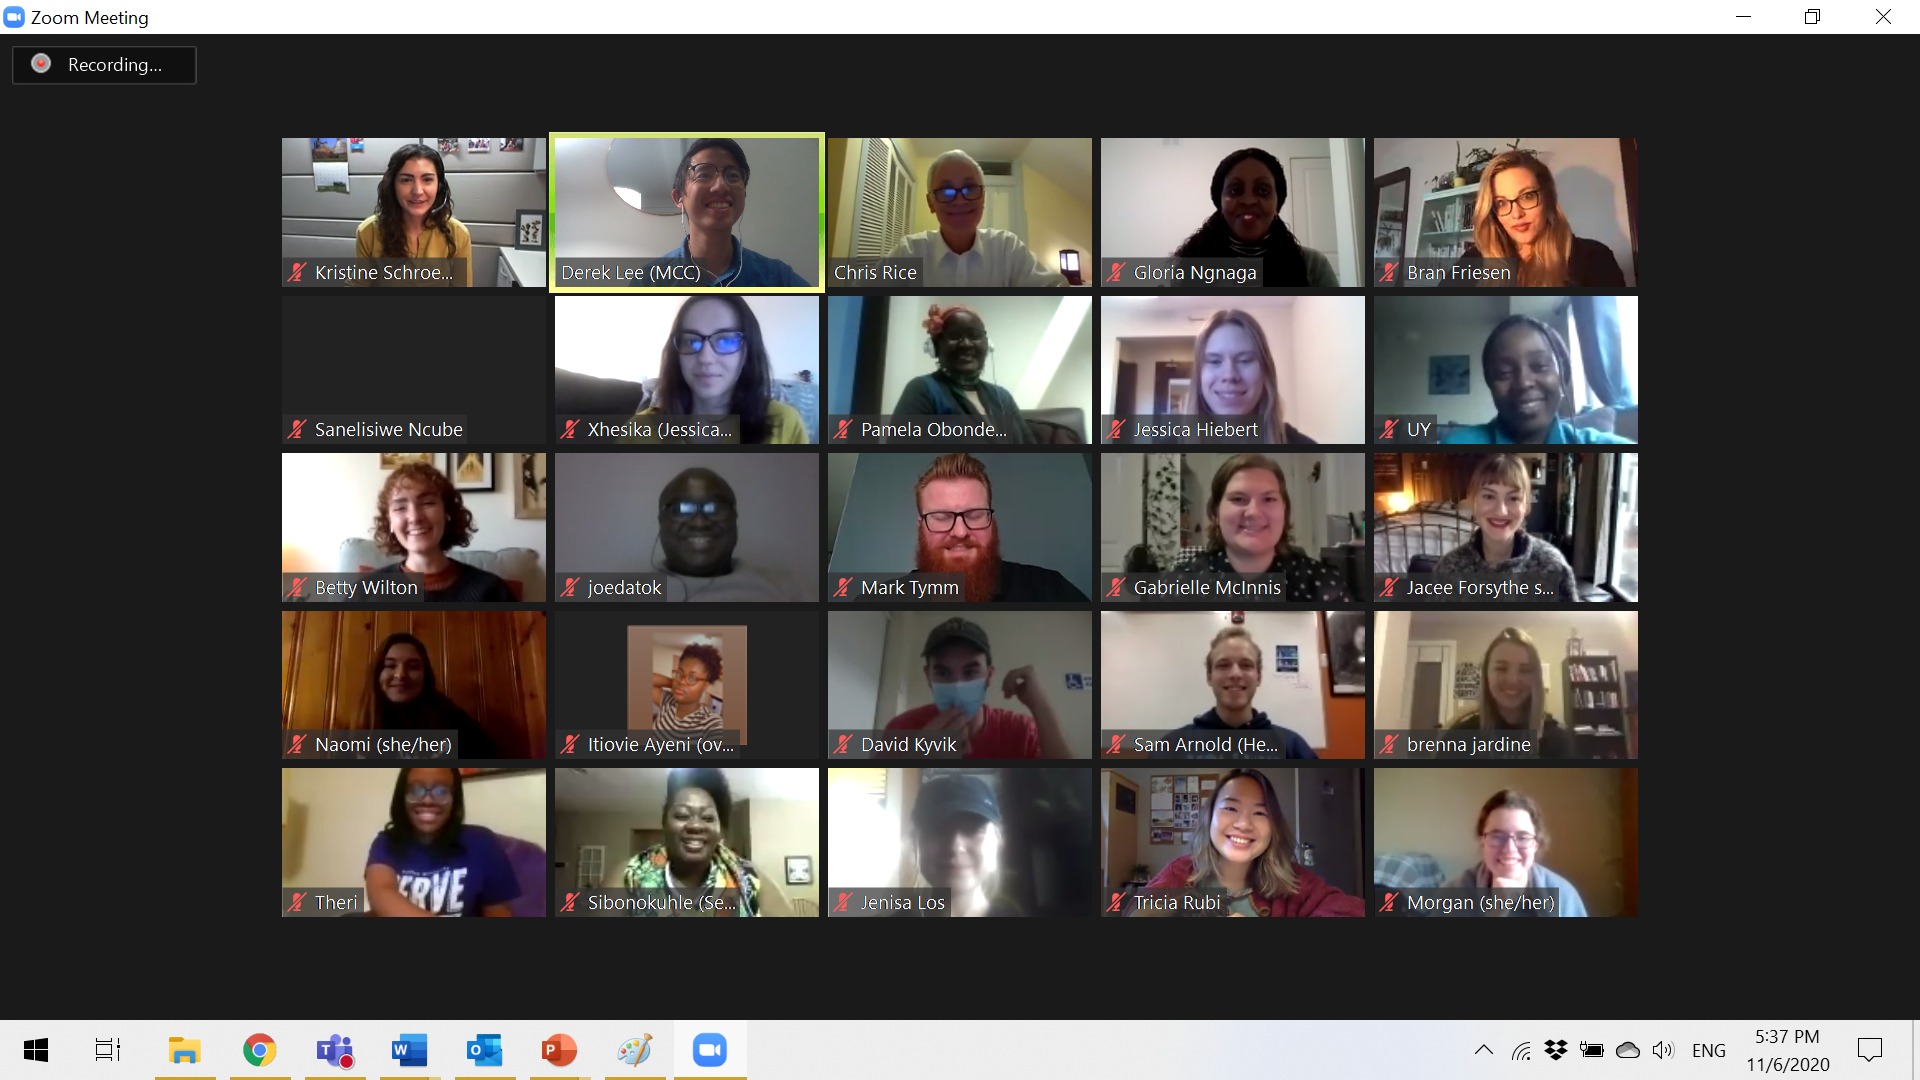 A screen shot of meeting participants in a Zoom presentation by MGA alumnus Derek Lee.